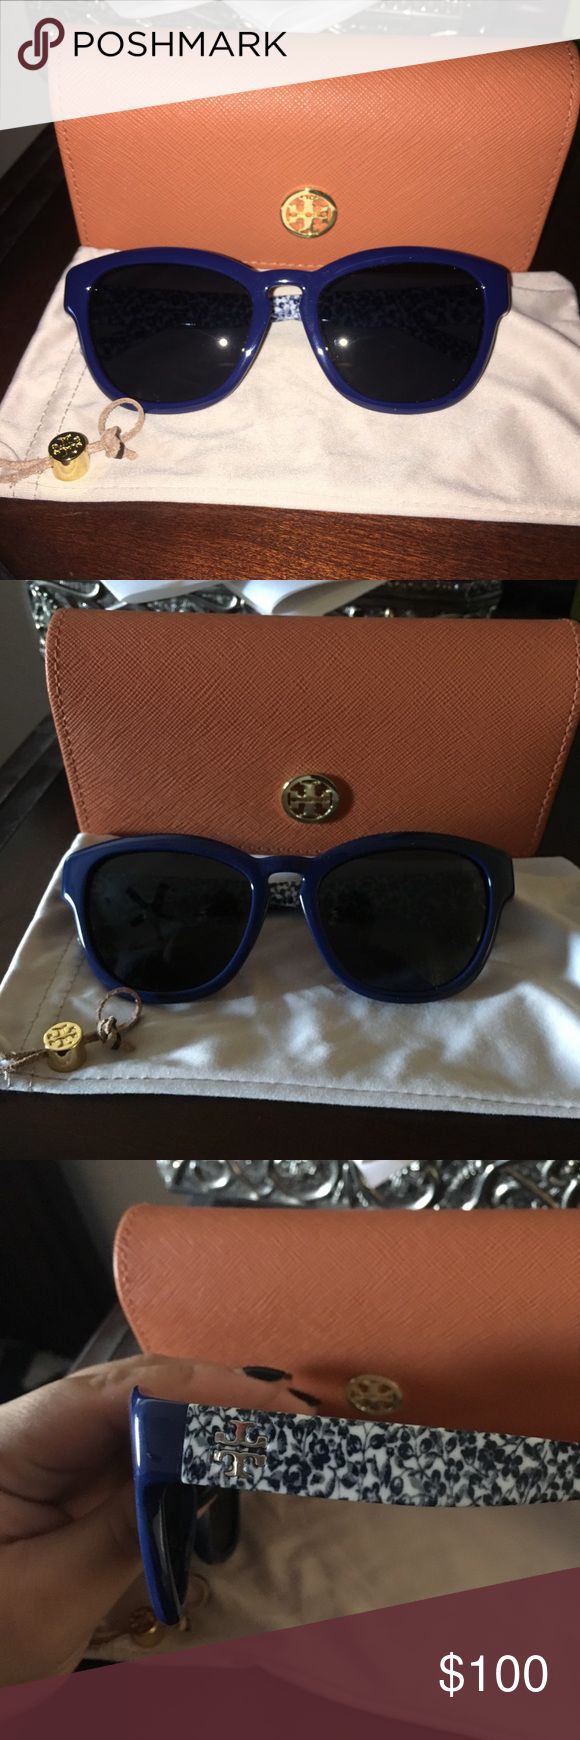 Tory Burch Sunglasses Super cute navy blue floral sunglasses! Tory Burch. These are super cute, sunglasses with a cute floral pattern on the sides with a subtle cat-eye shape. (Im modeling them in the last pic!) my mom bought these like a few years ago but never really wore them so probably never worn more than 5-8 times! Bought here in a Tory shop in Vegas! 🕶💙🌎 Tory Burch Accessories Sunglasses